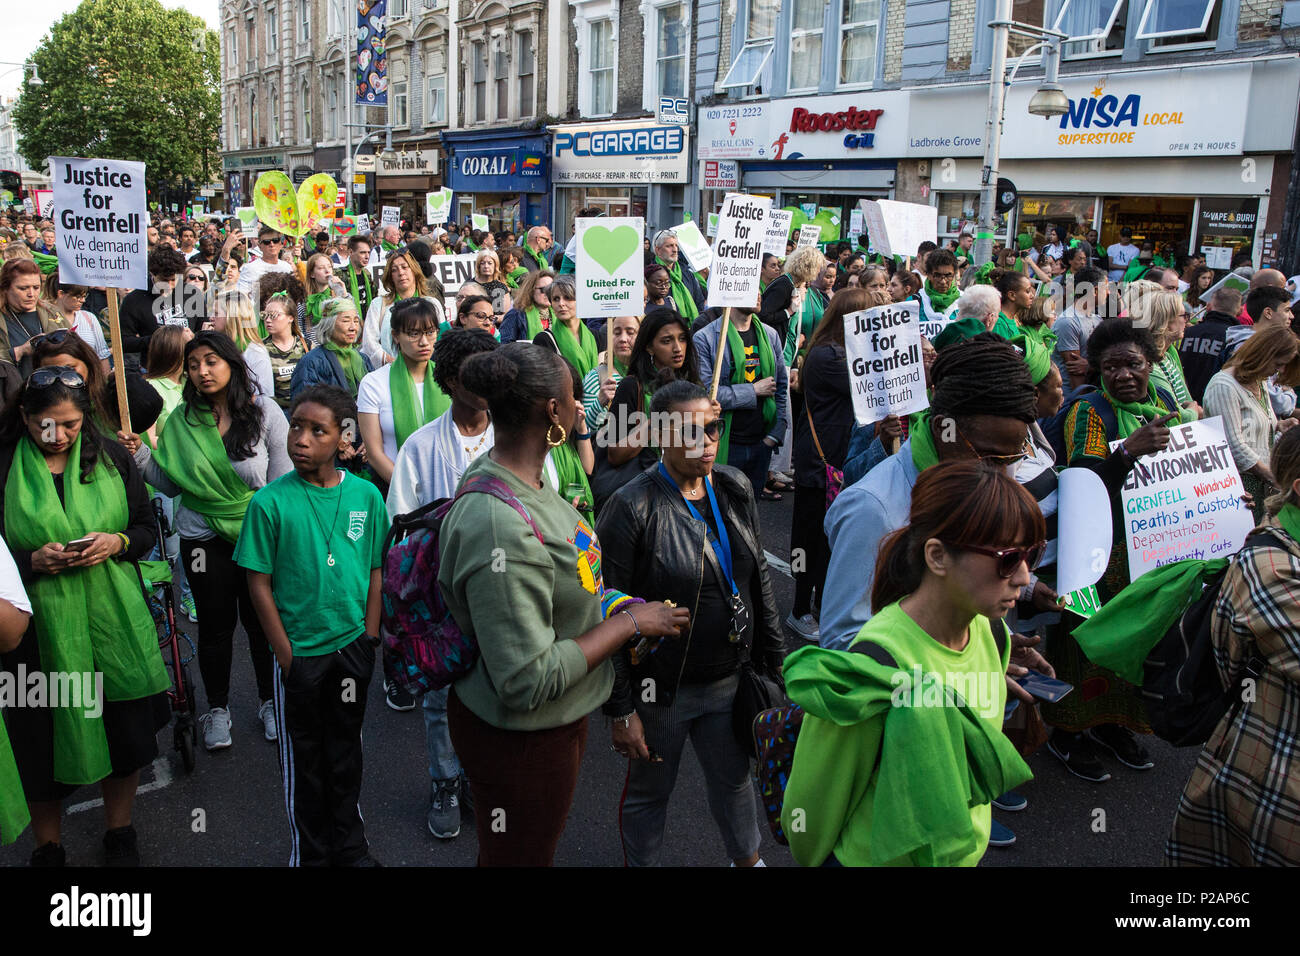 London, UK. 14th June, 2018. Members of the Grenfell community and supporters take part in the Grenfell Silent March through West Kensington on the first anniversary of the Grenfell Tower fire. 72 people died in the Grenfell Tower fire and over 70 were injured. Credit: Mark Kerrison/Alamy Live News - Stock Image